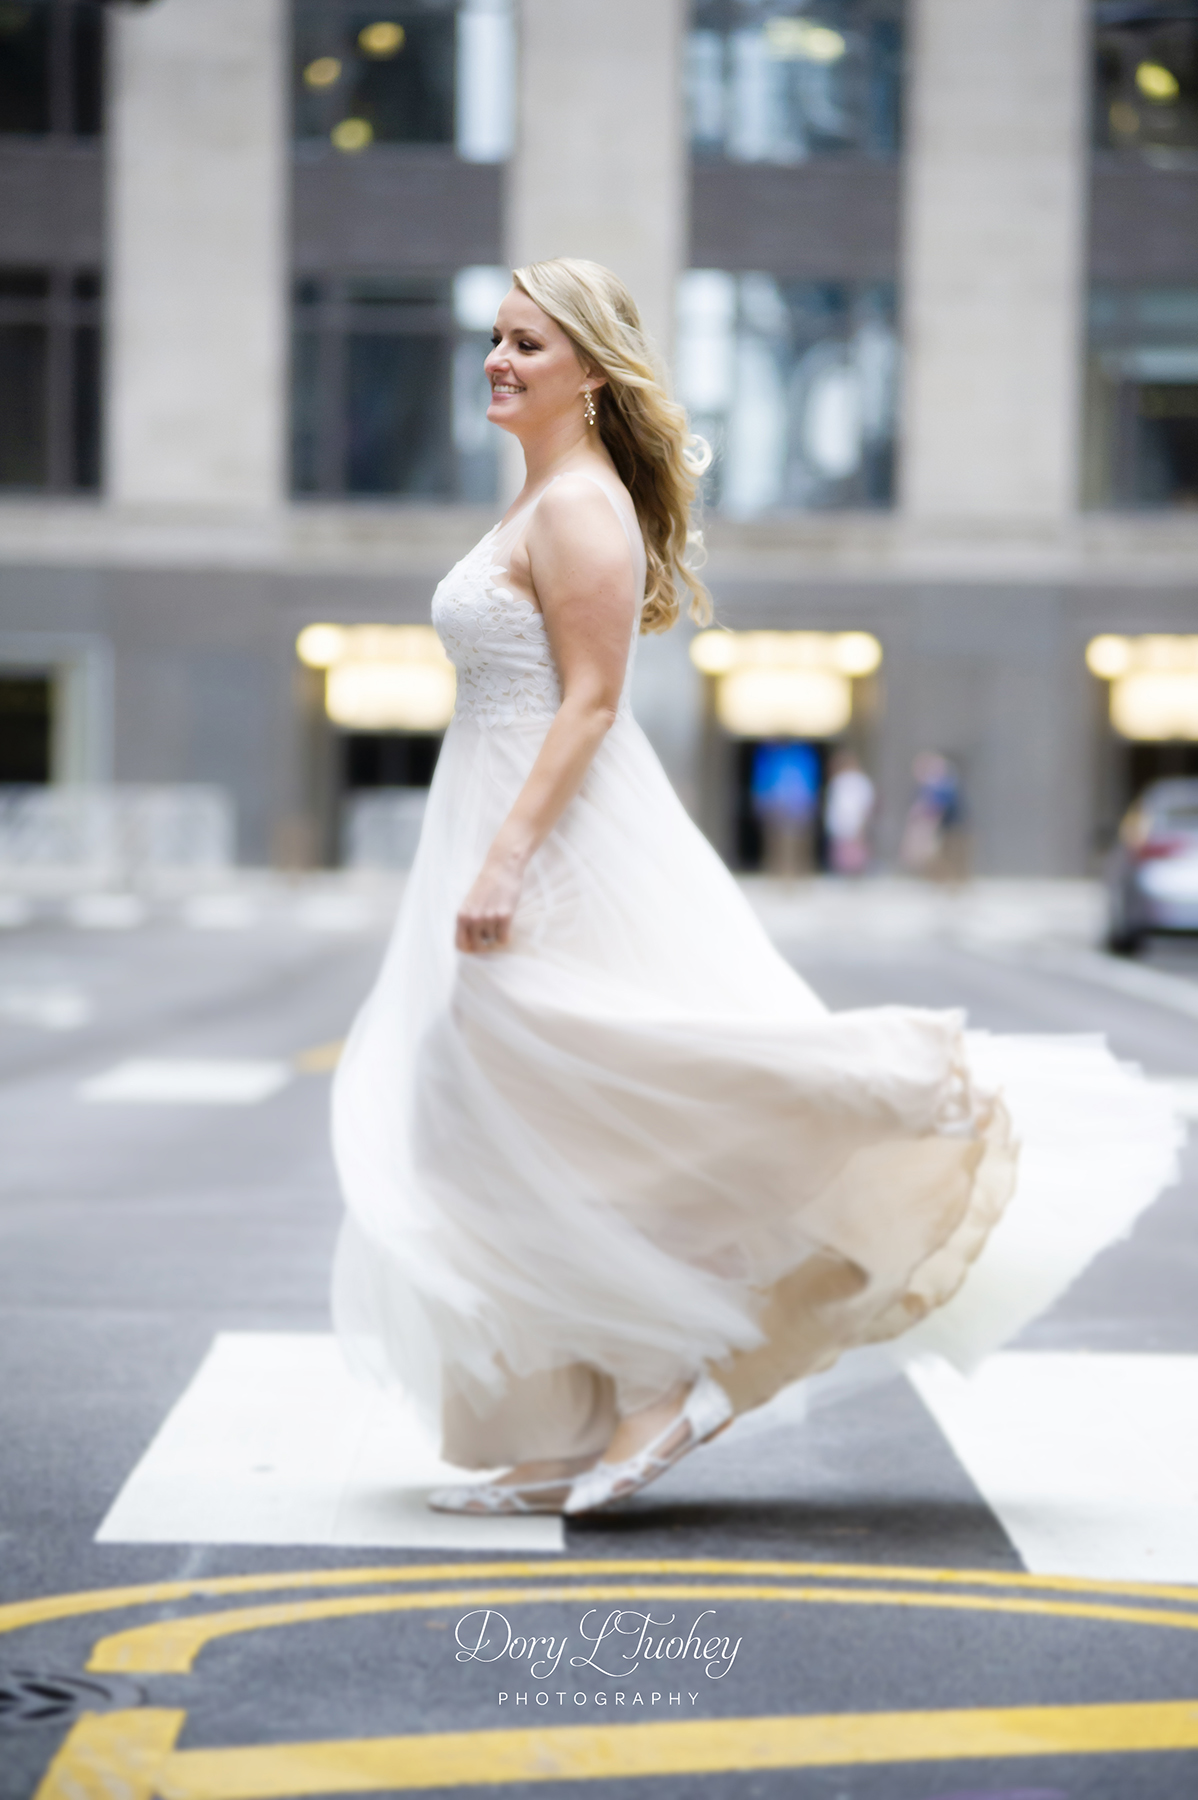 Rookery_chicago_dory_photographer_wedding_stairs_bhldn_love_dawson_08.jpg